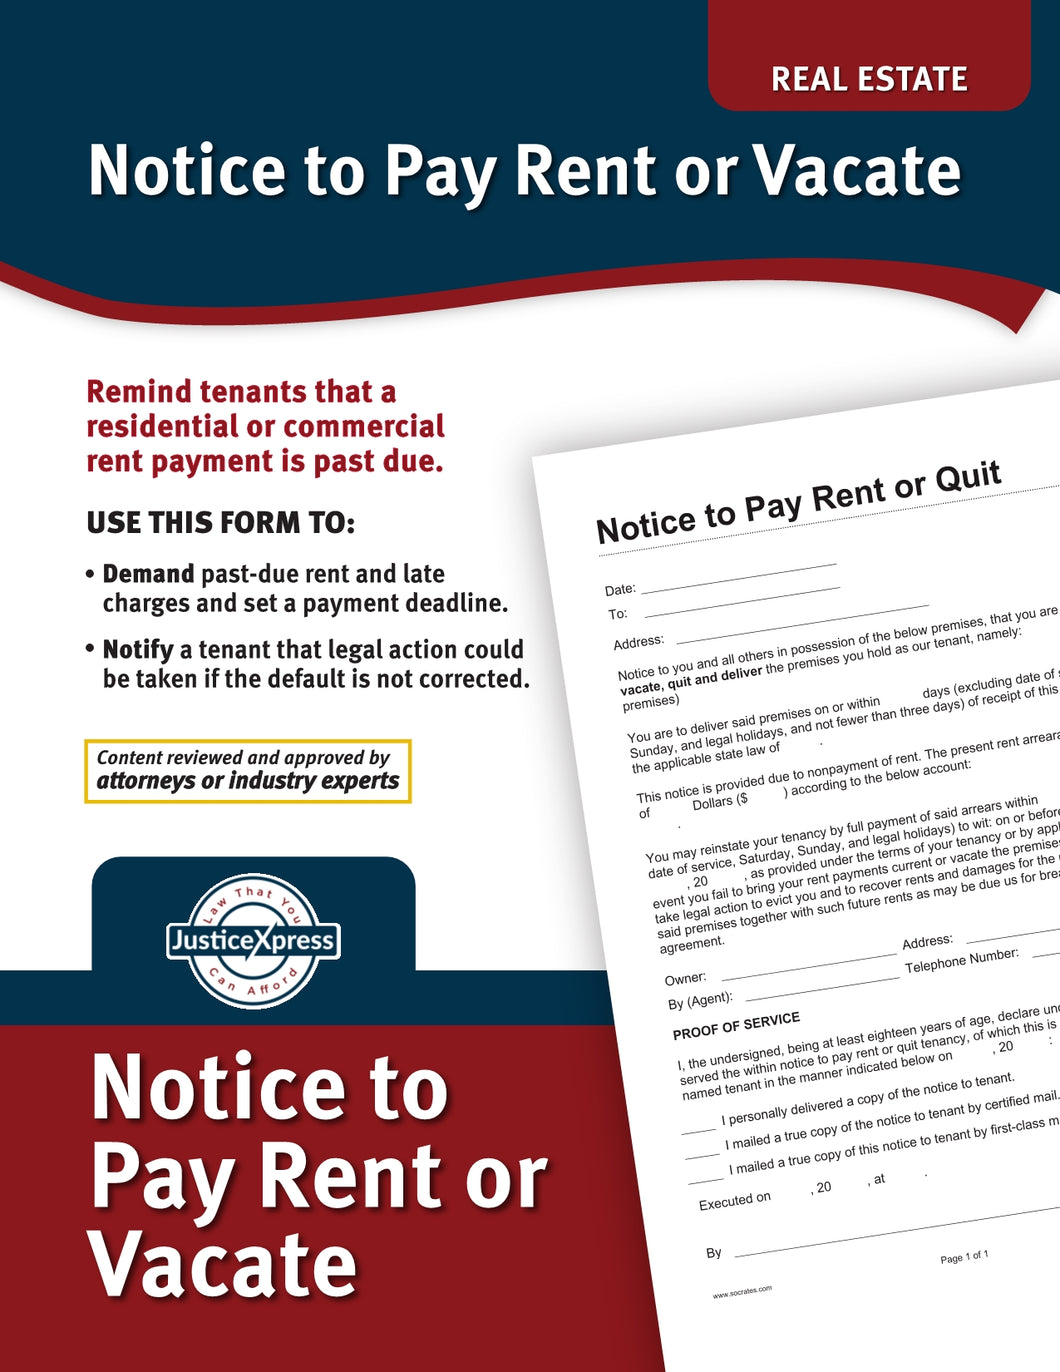 Notice to Pay Rent or Vacate